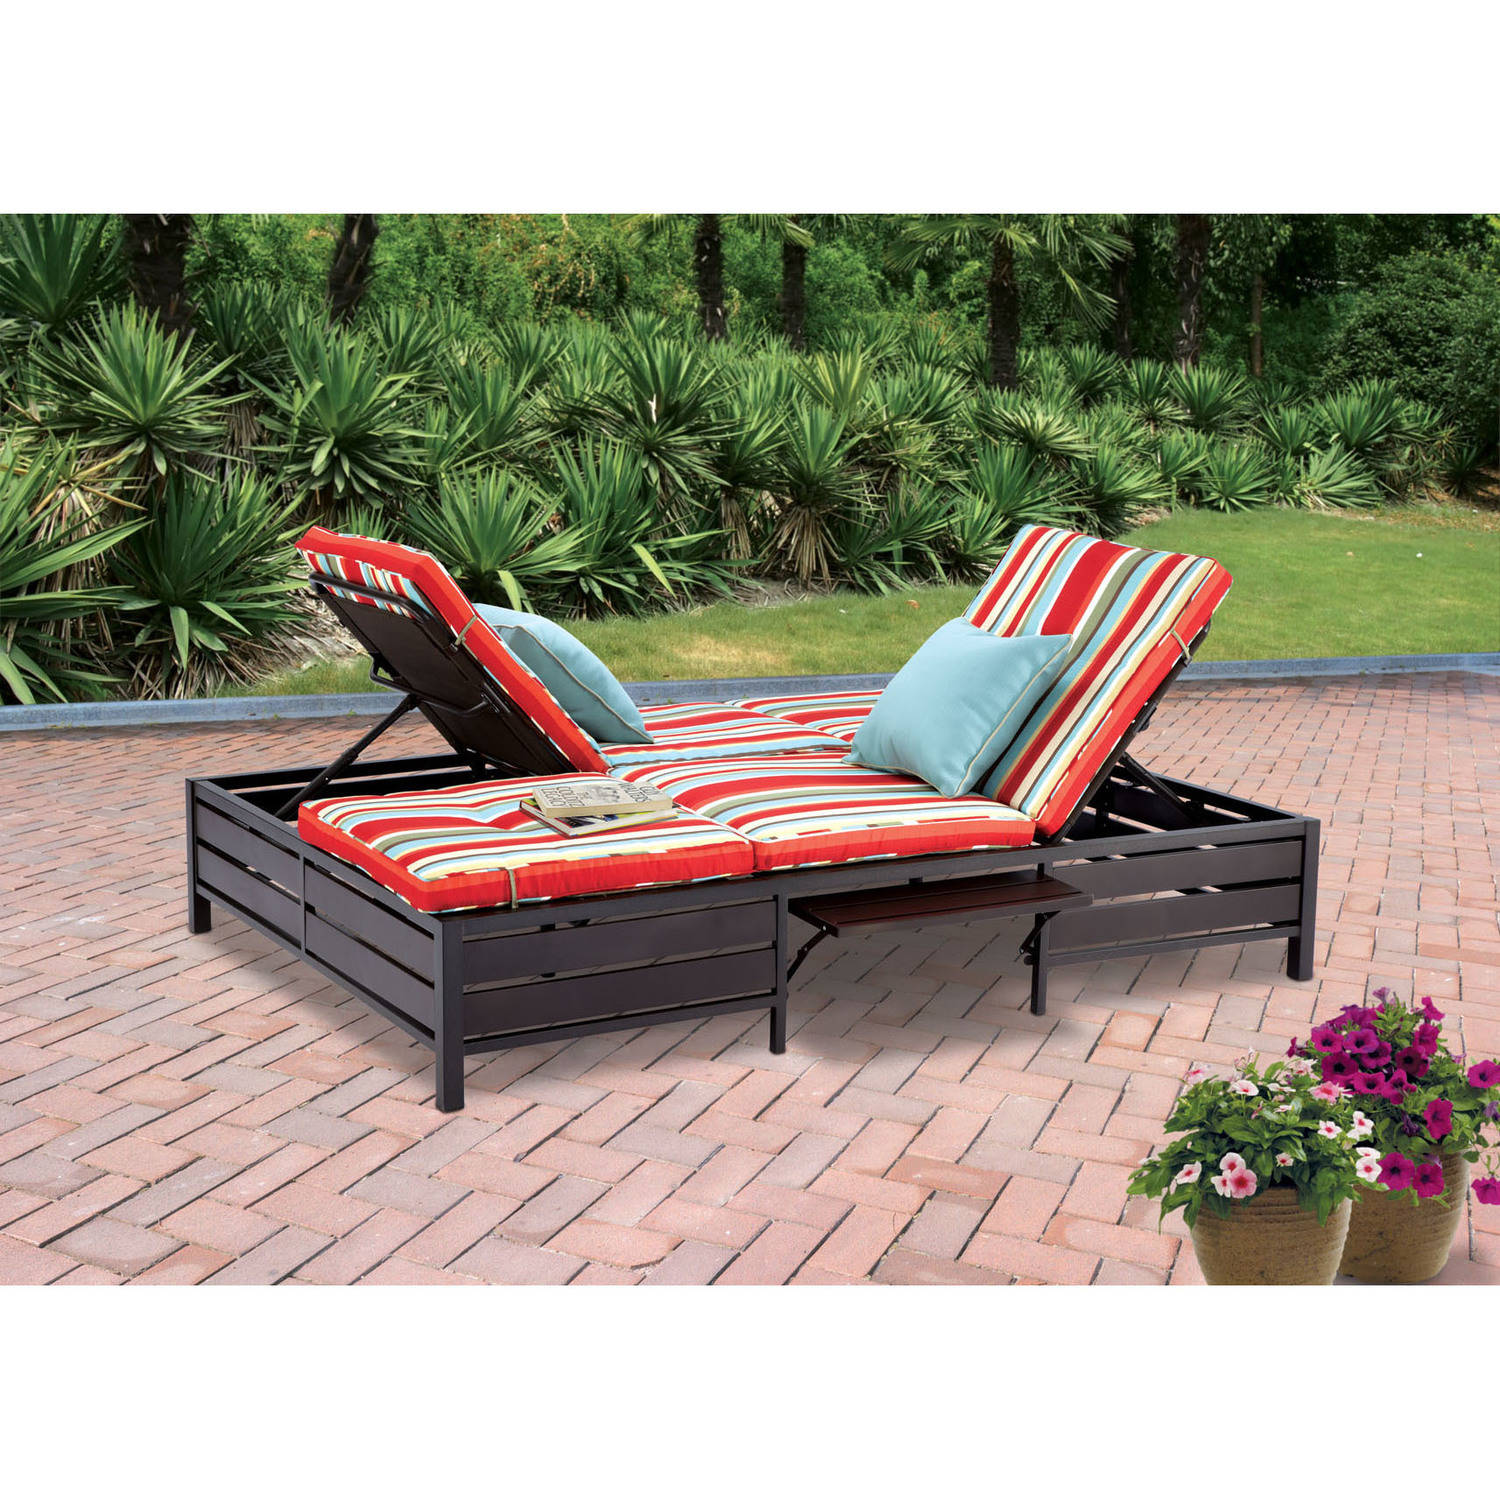 Mainstays Double Chaise Lounger, Stripe, Seats 2 Part 44